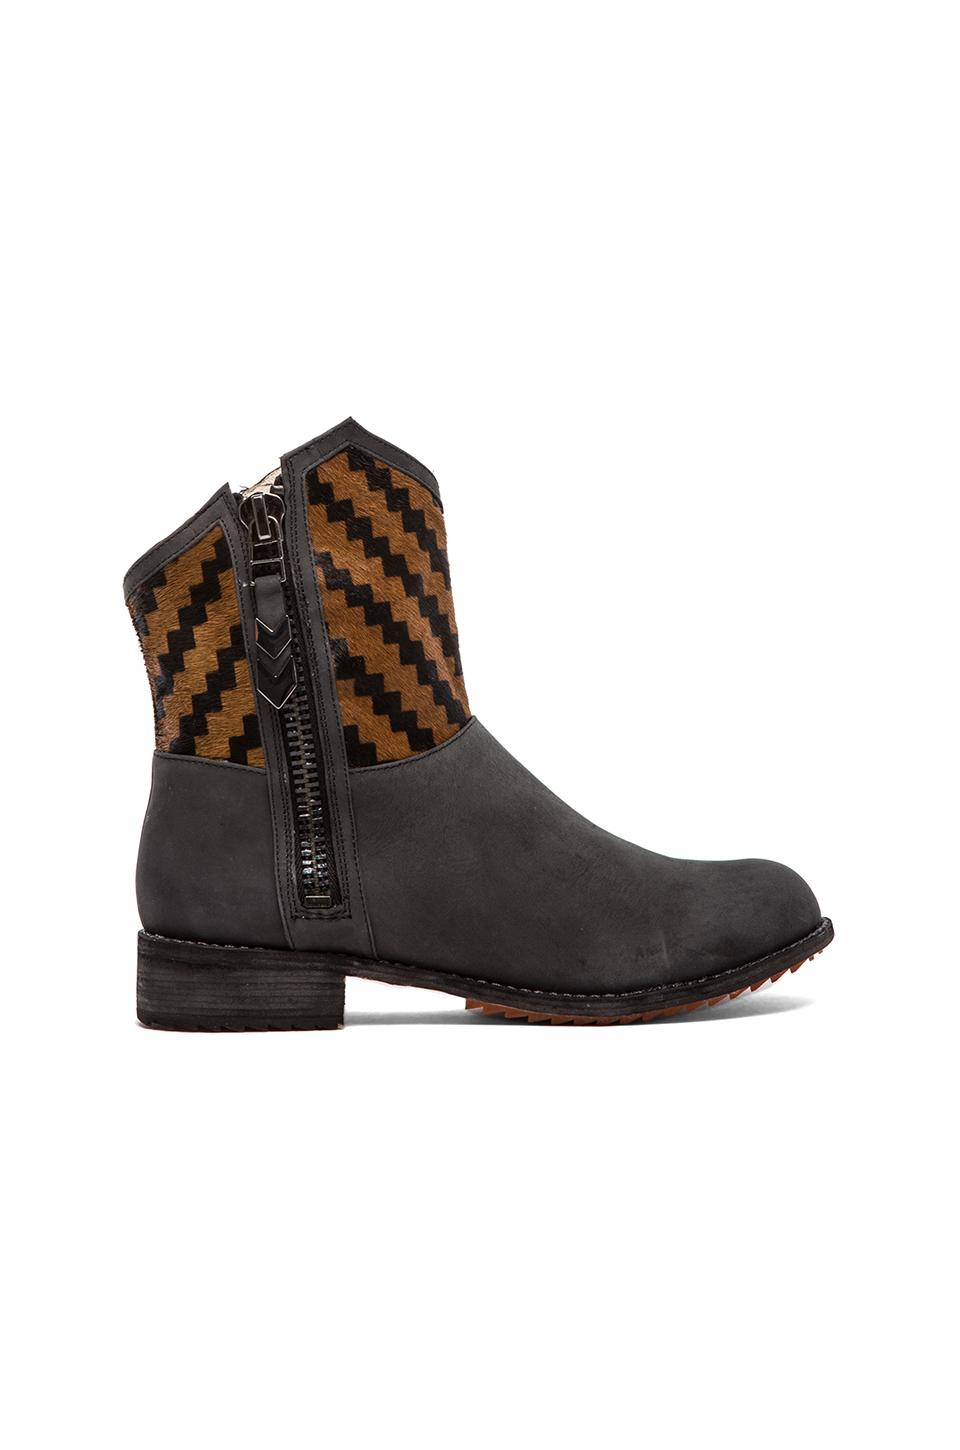 Matt Bernson Gotham Boot with Calf Hair in Nero/Aztec Pony